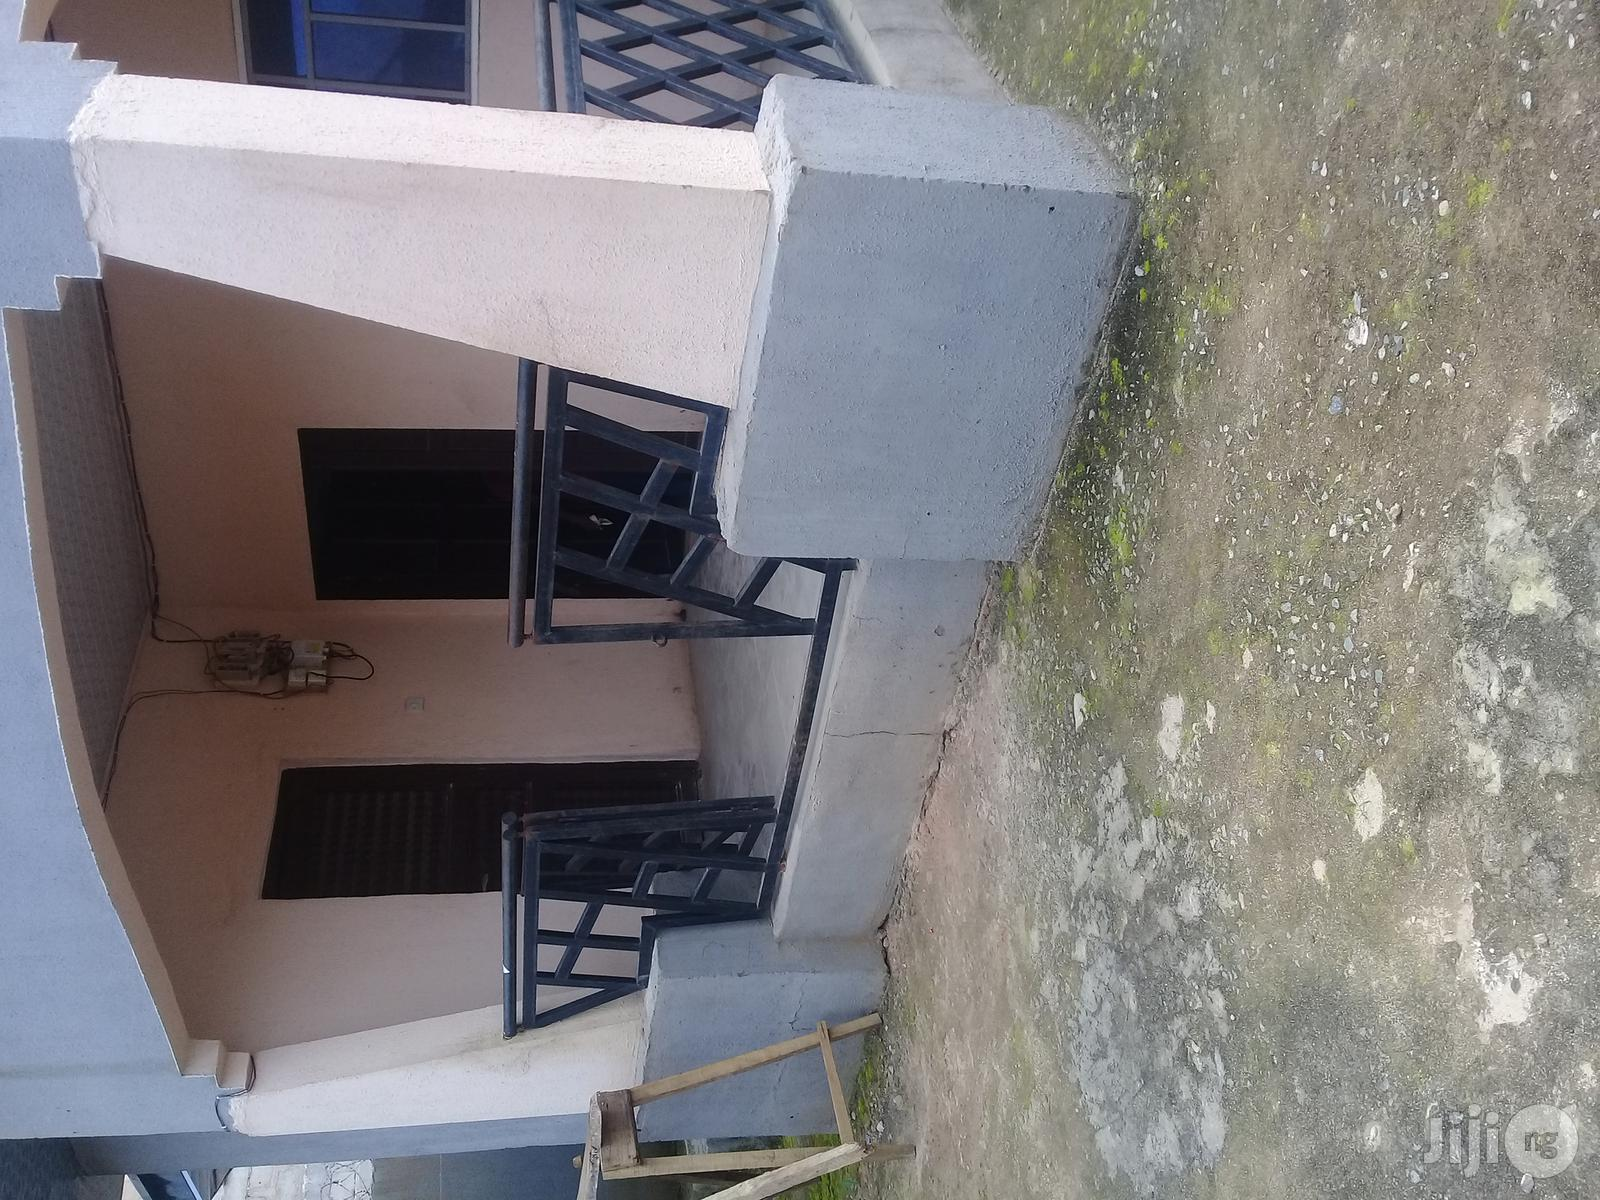 1bdrm Apartment in Benin City for Rent   Houses & Apartments For Rent for sale in Benin City, Edo State, Nigeria